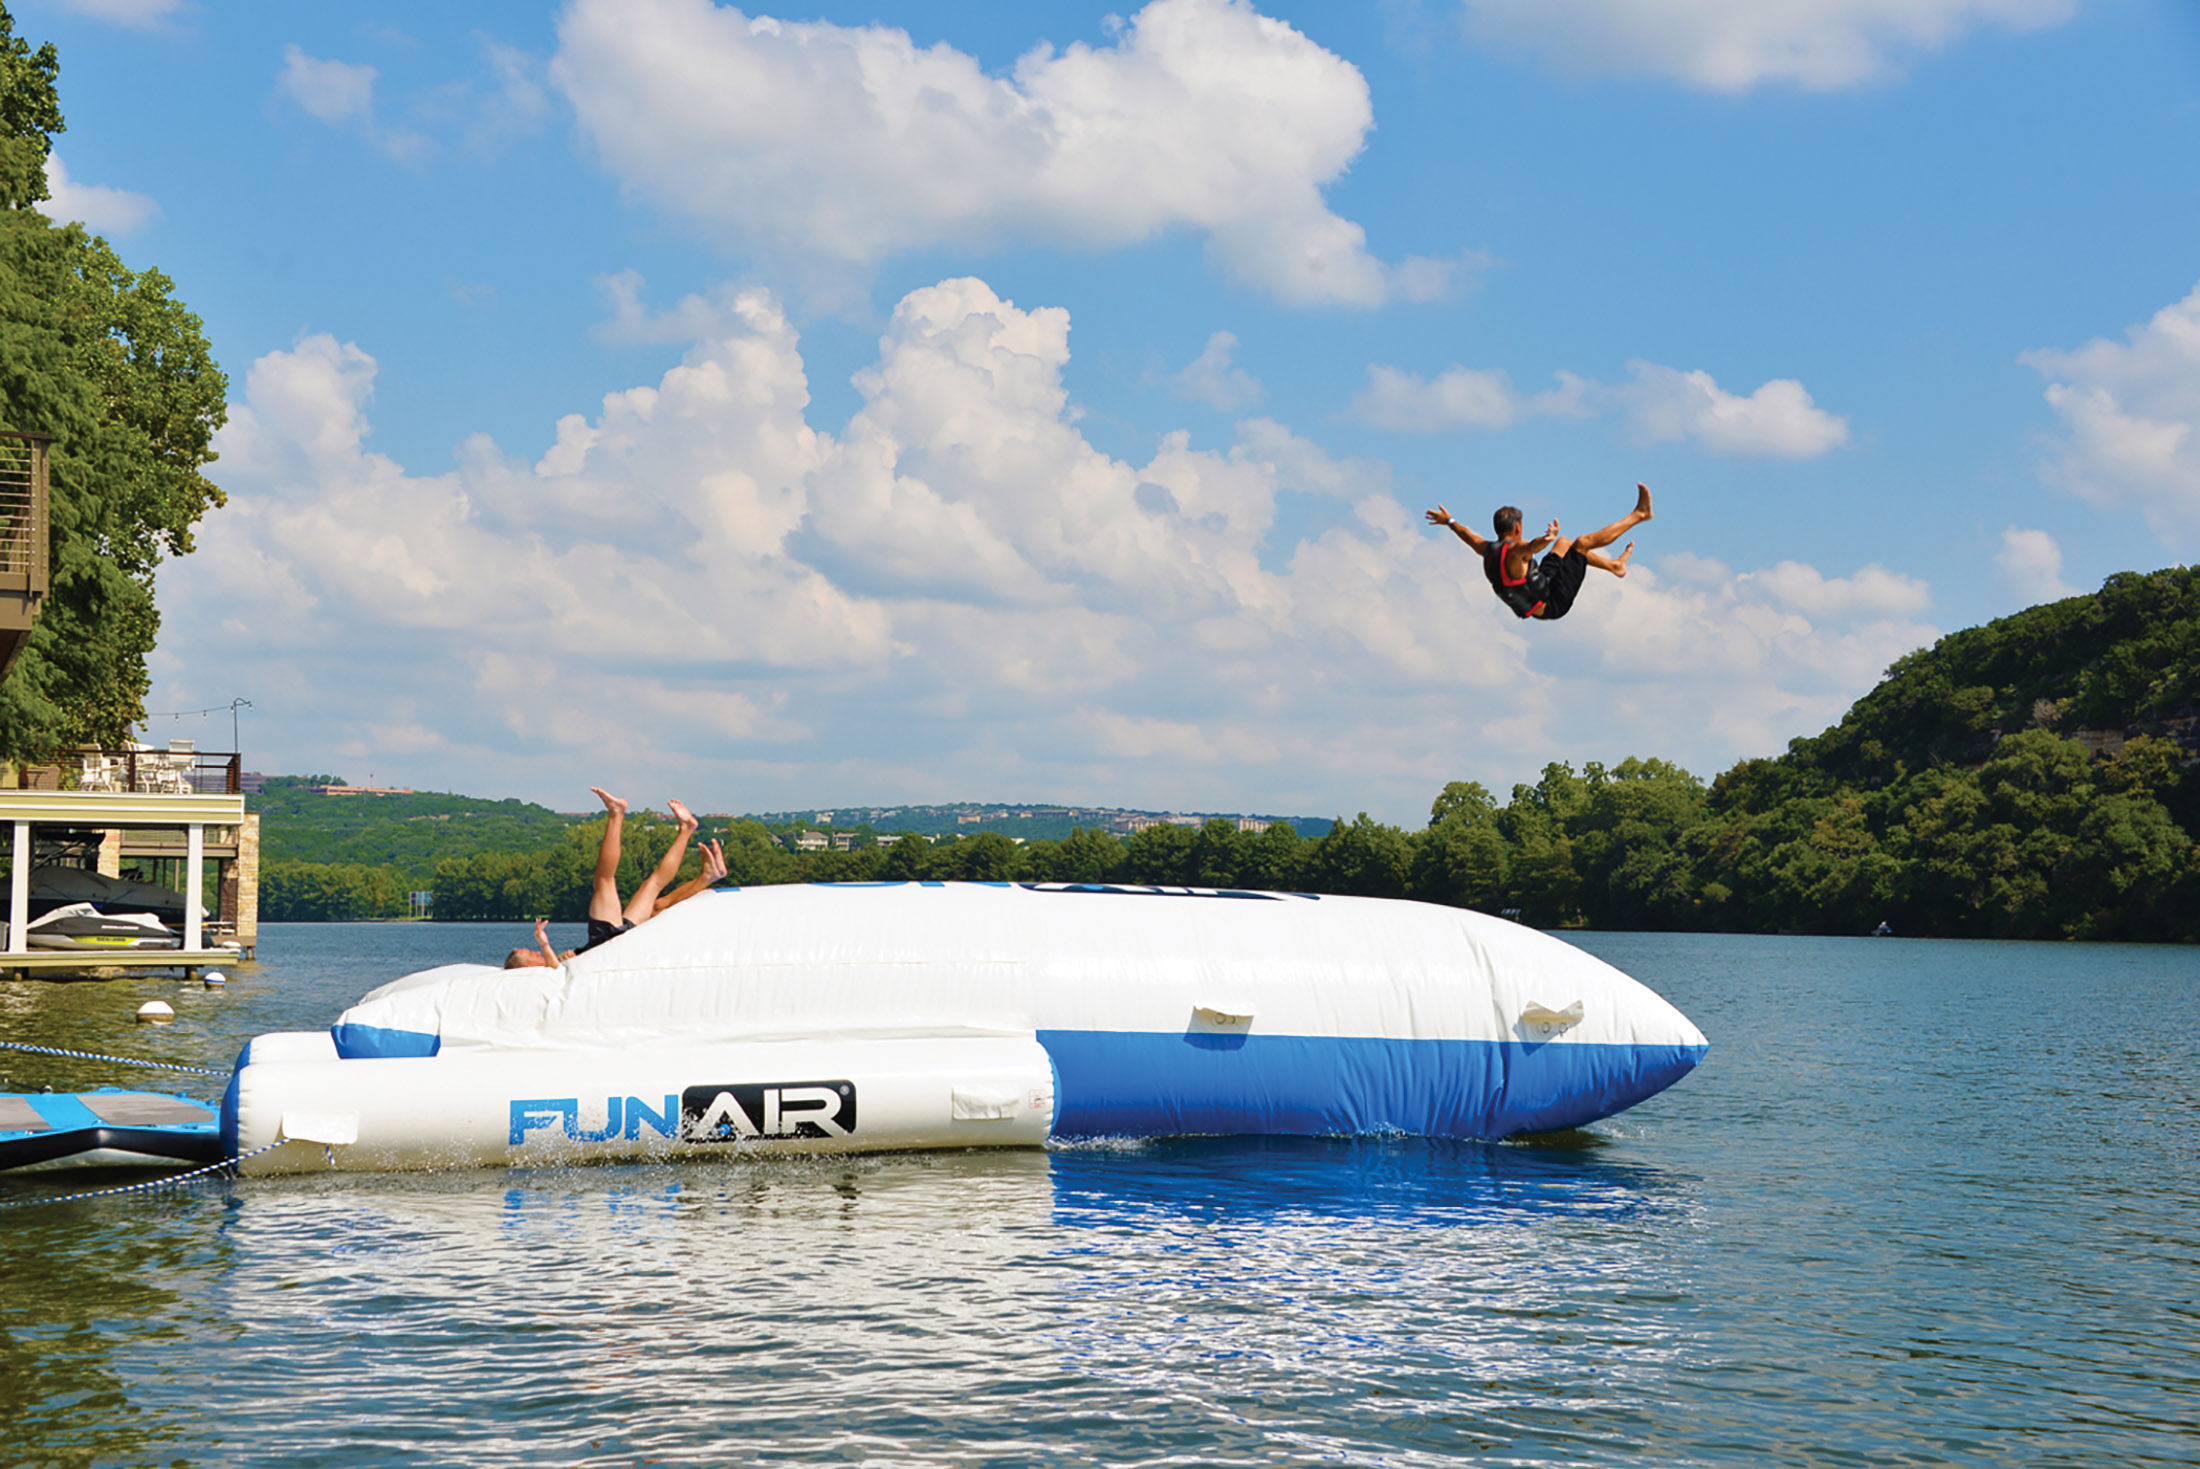 relates to Floating Mansions and Diving Drones! Summer's Hottest Water Whizbangs